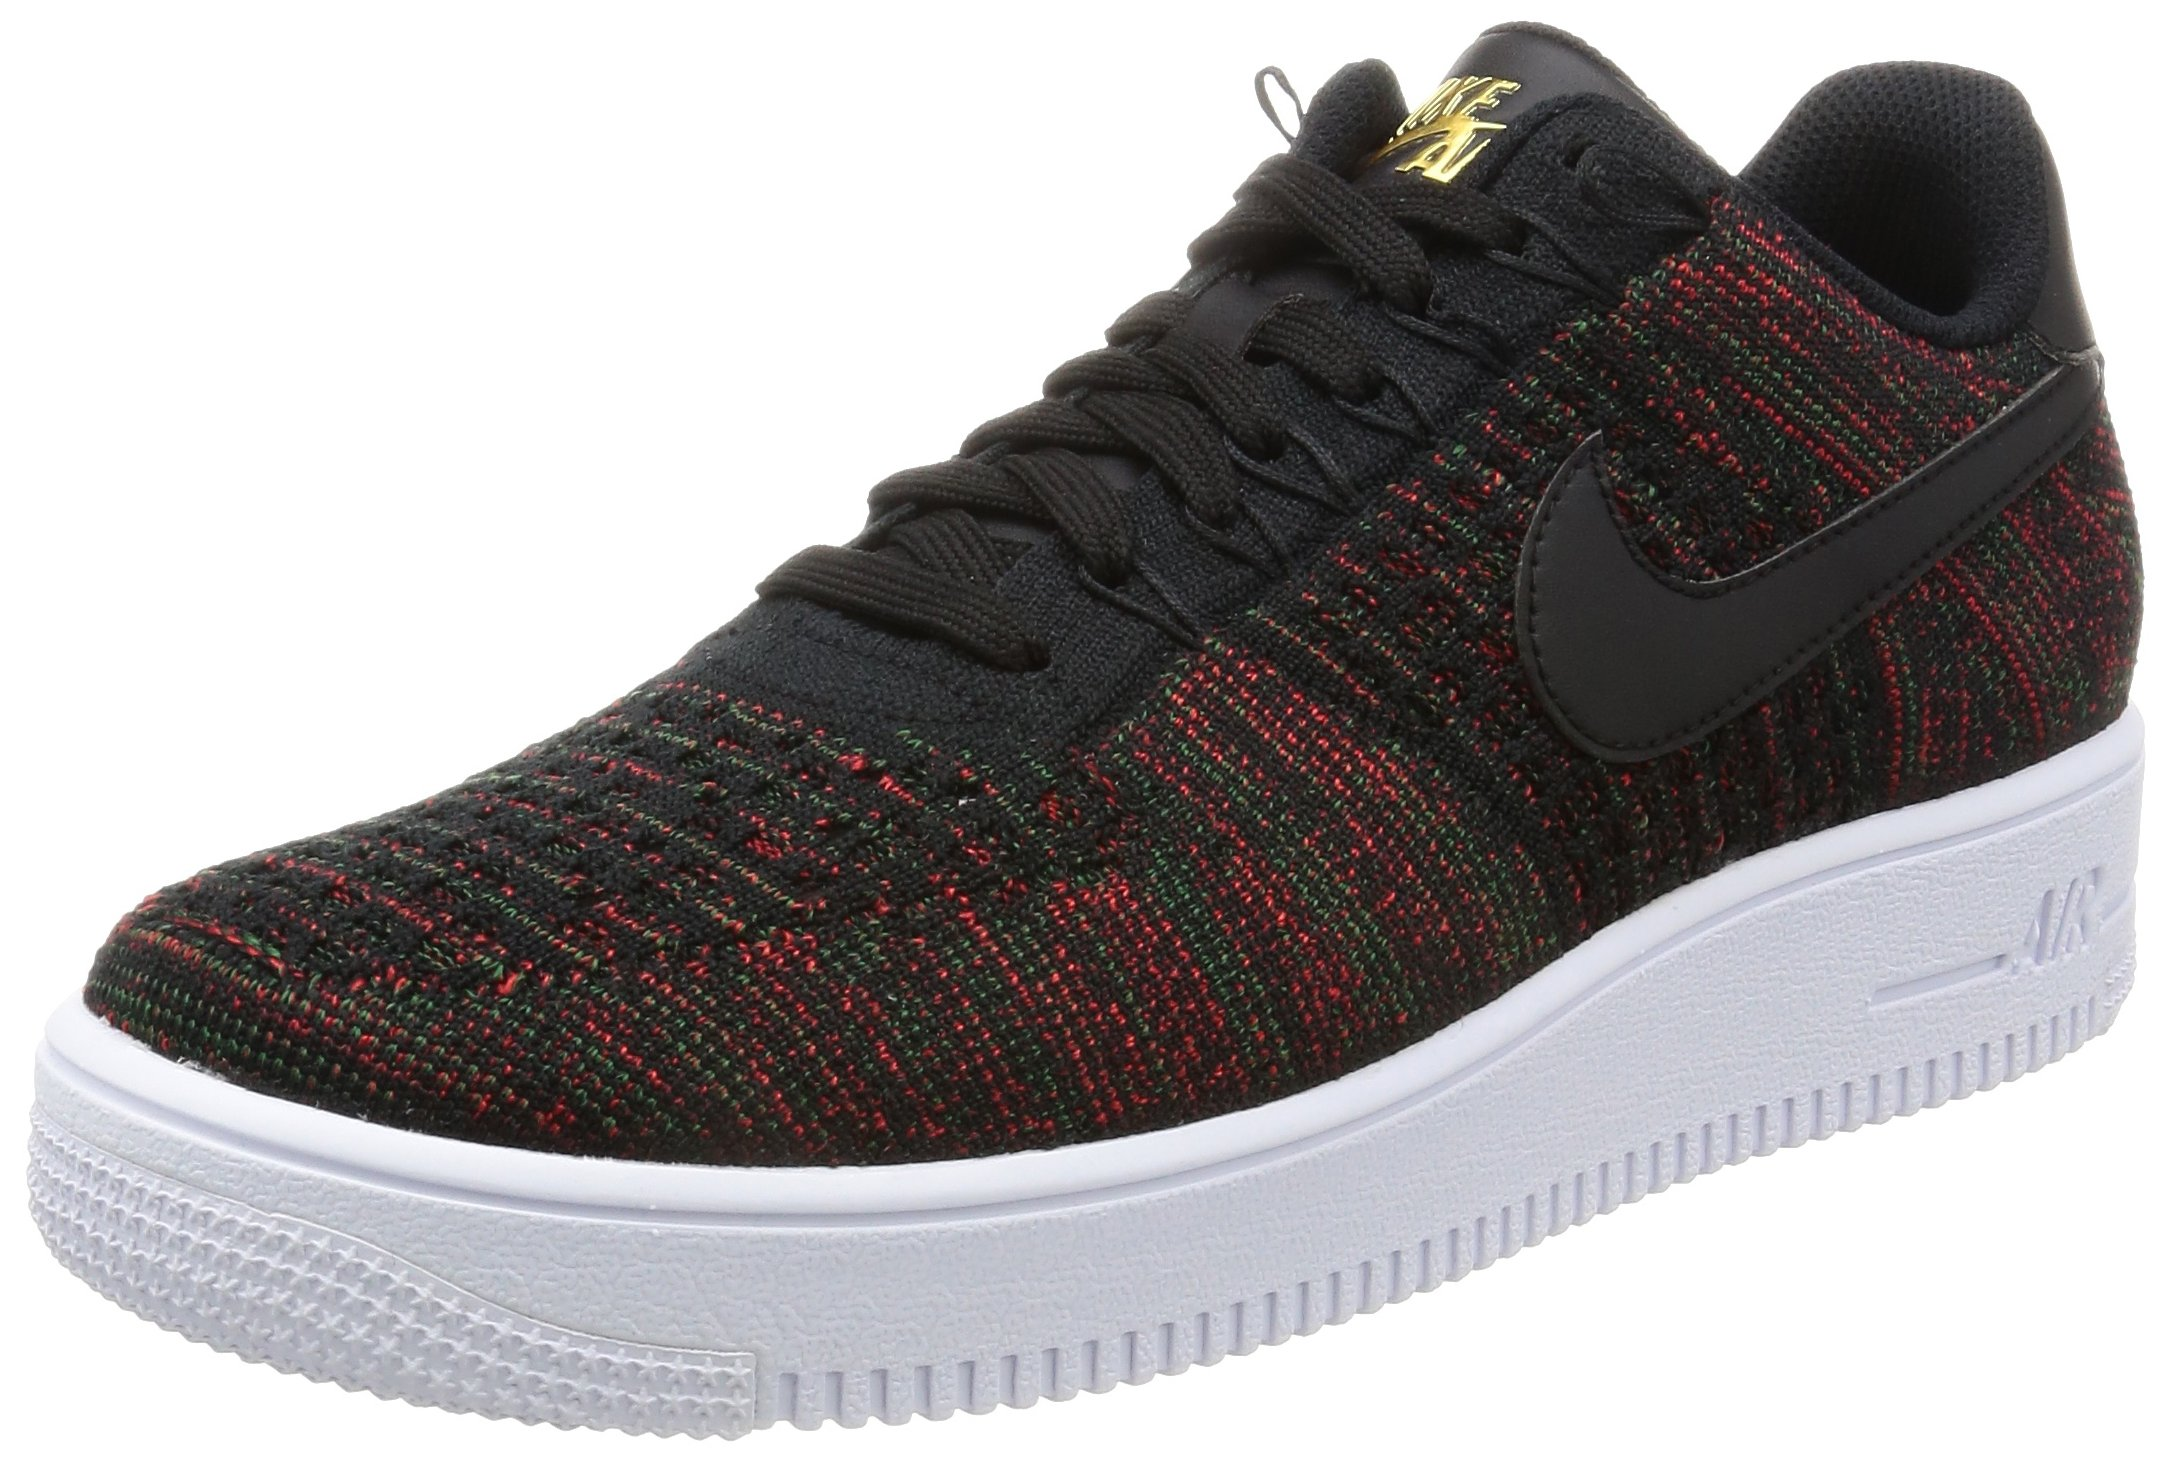 cheaper 8bc54 a6212 Nike Mens Air Force One Flyknit Low Black/Metallic Gold/White 817419-005  (SIZE: 10)